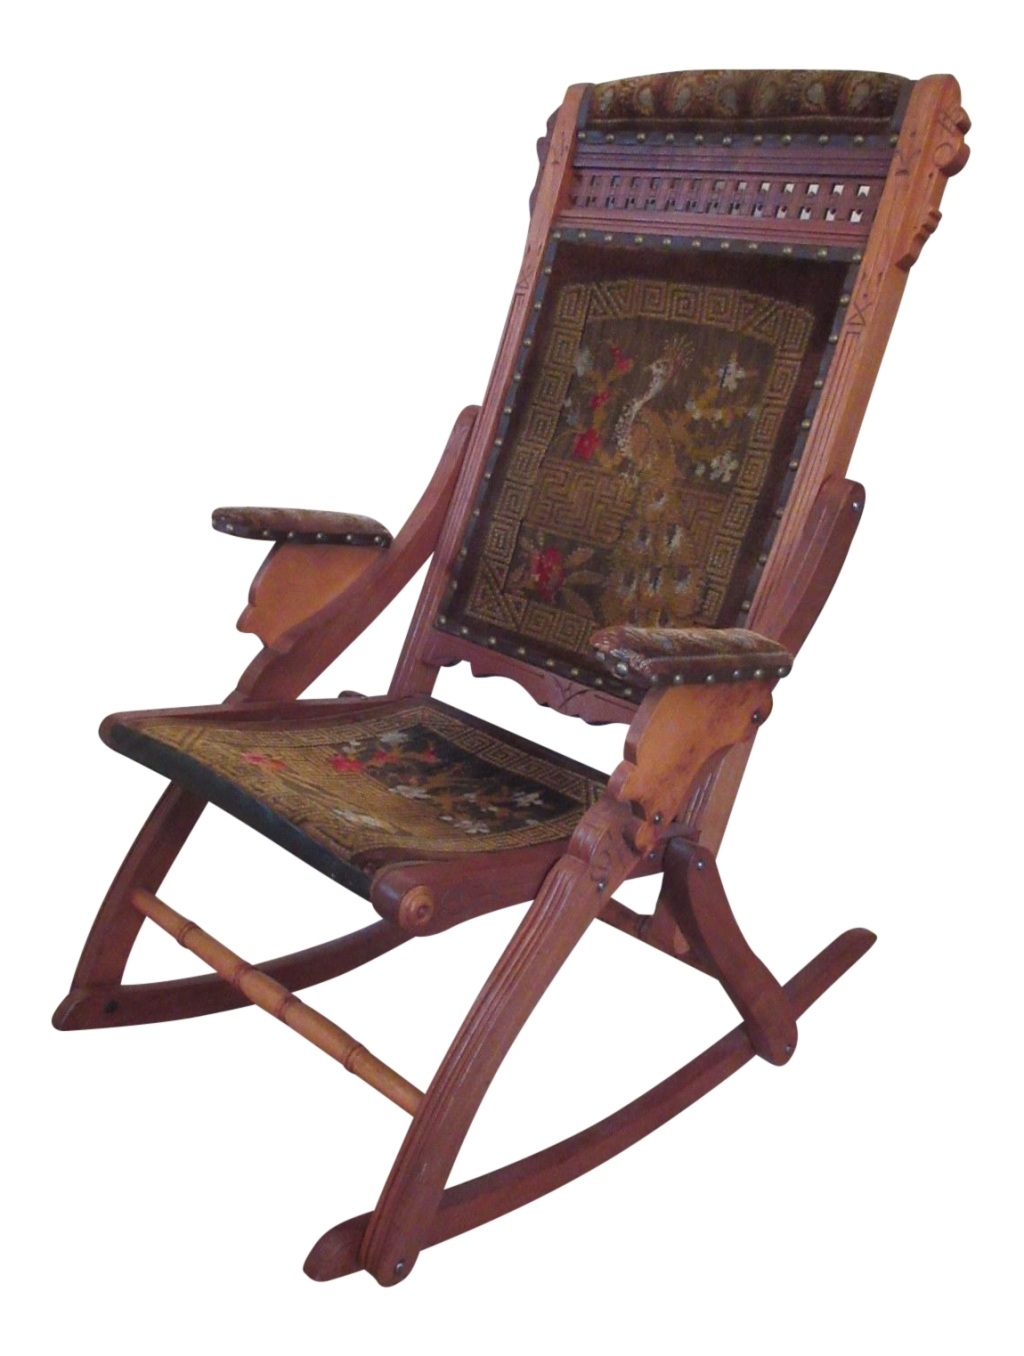 Victorian Rocking Chairs Regarding Favorite Vintage Used Wood Rocking Chairs Chairish Antique Wooden Victorian (View 15 of 20)